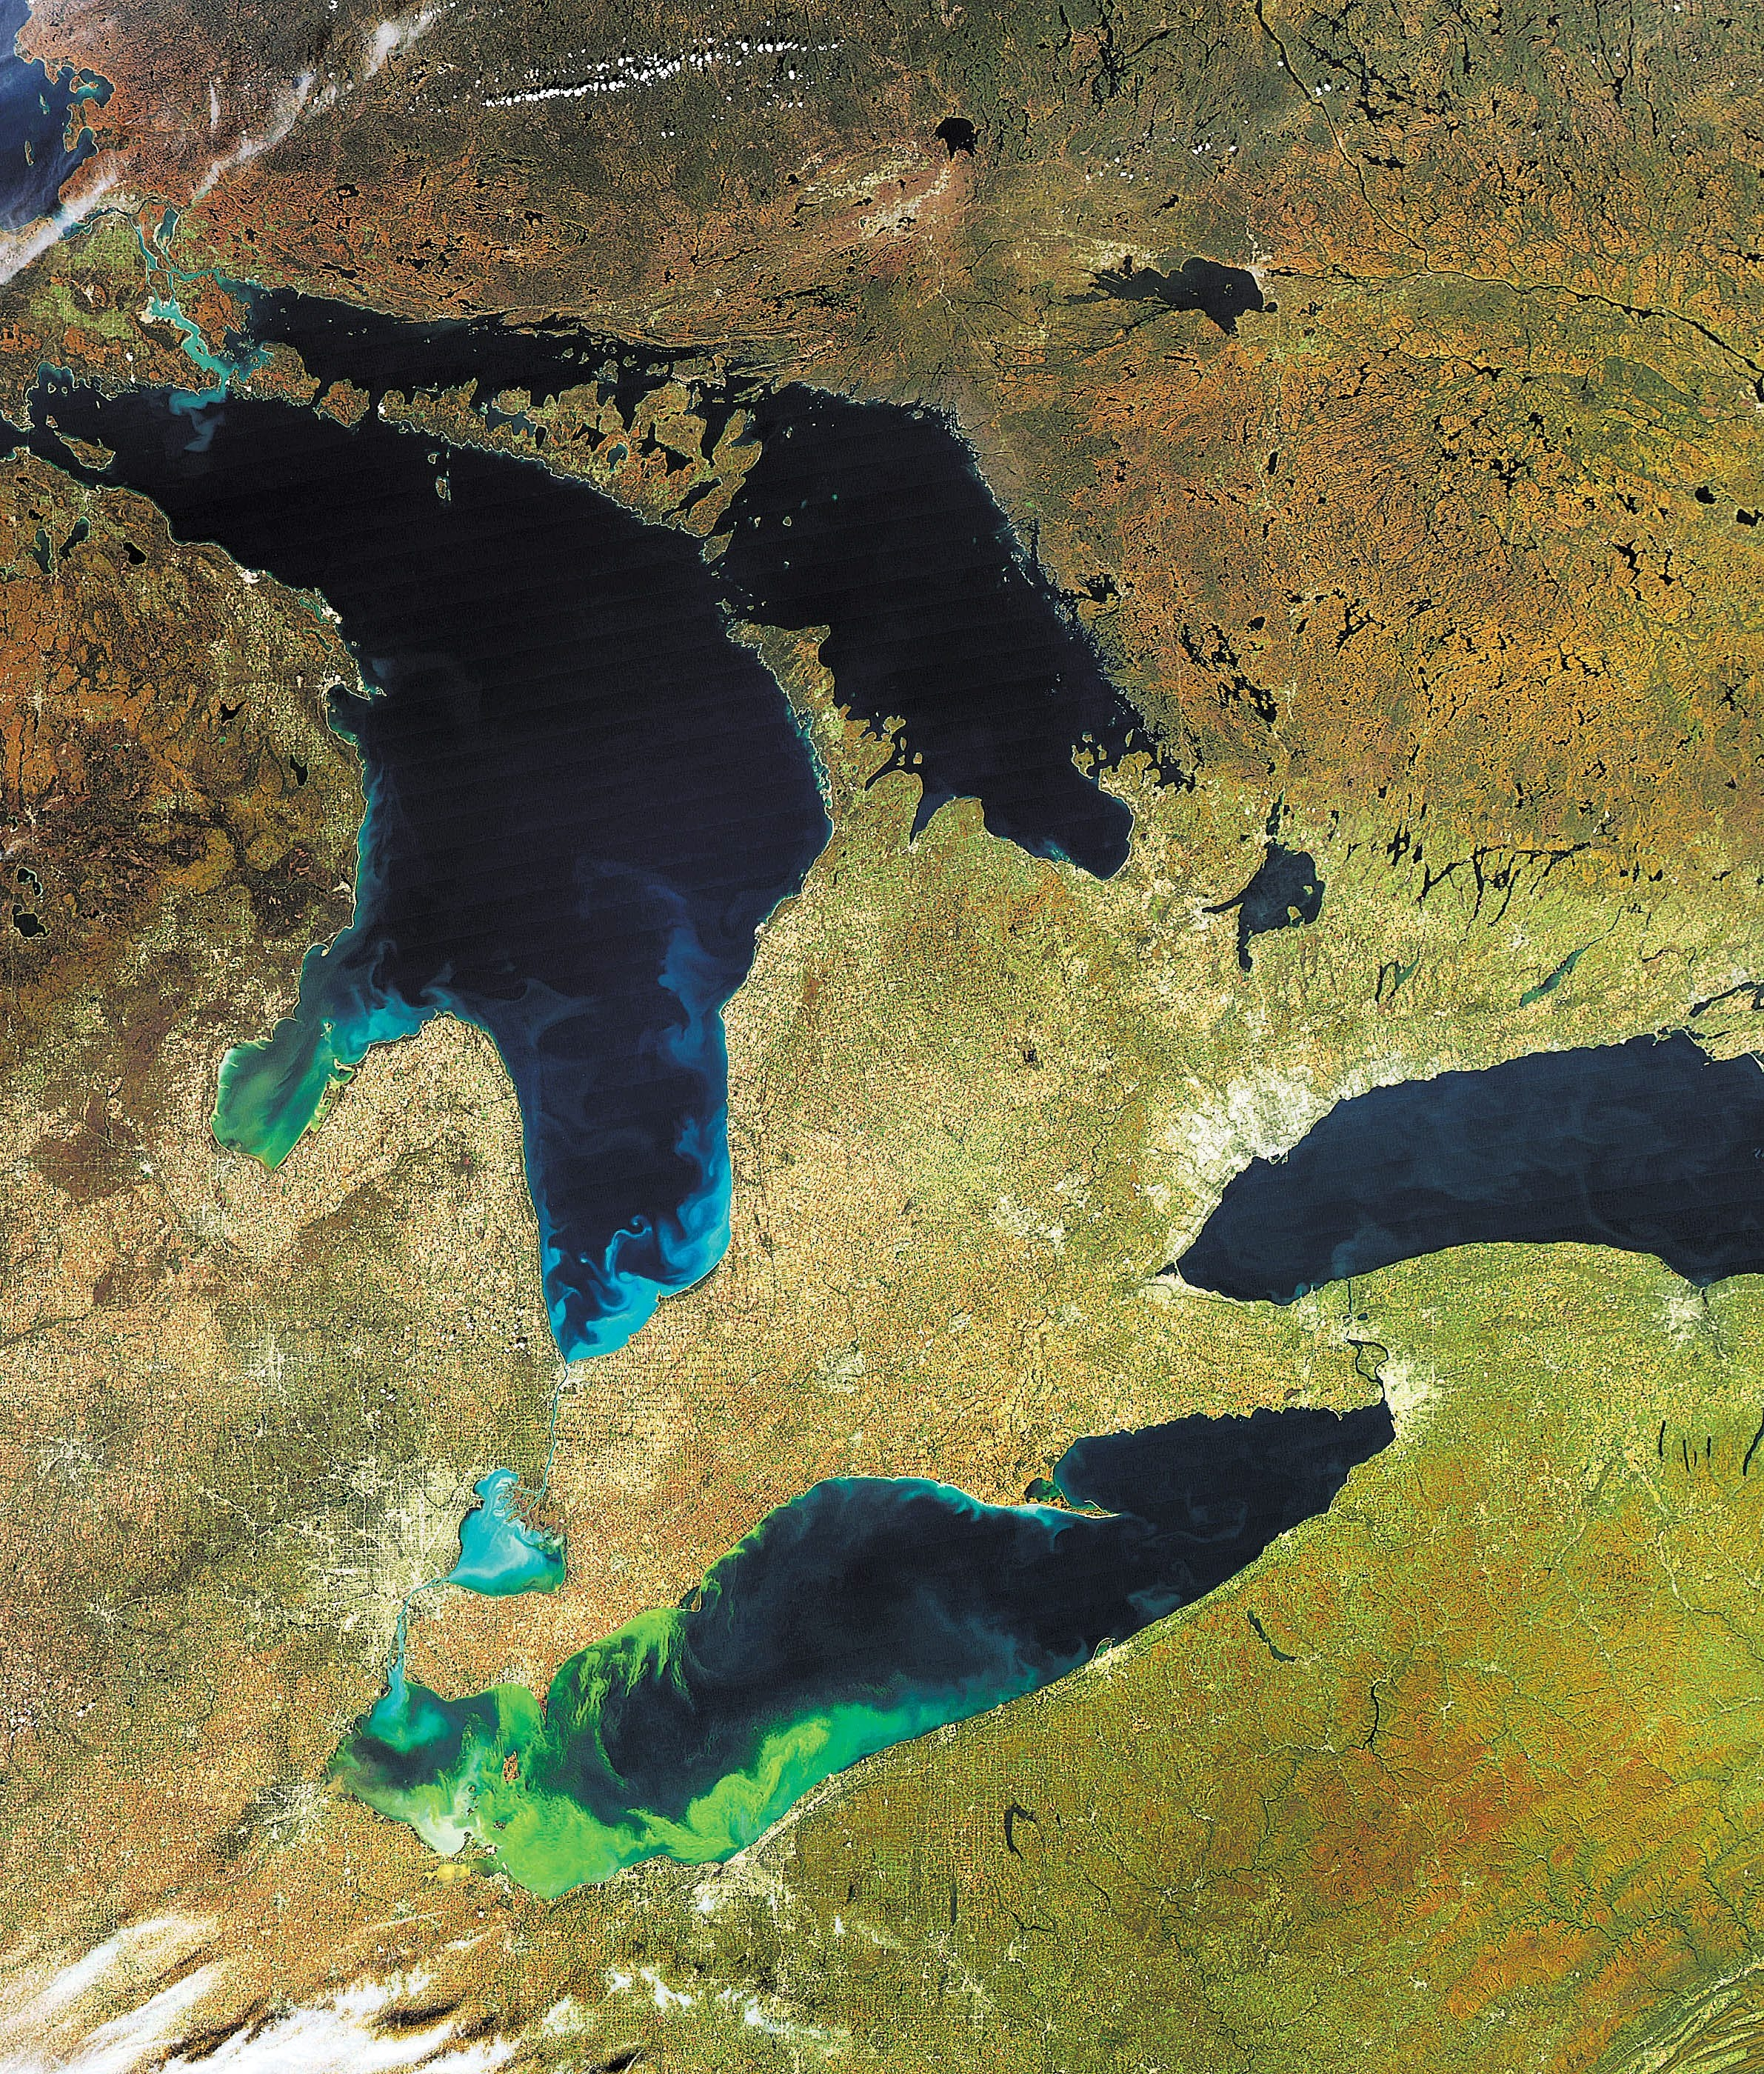 """Then-record Lake Erie algal bloom in 2011, seen in satellite image, led to oxygen-depleted """"dead zones"""" that endangered aquatic life."""